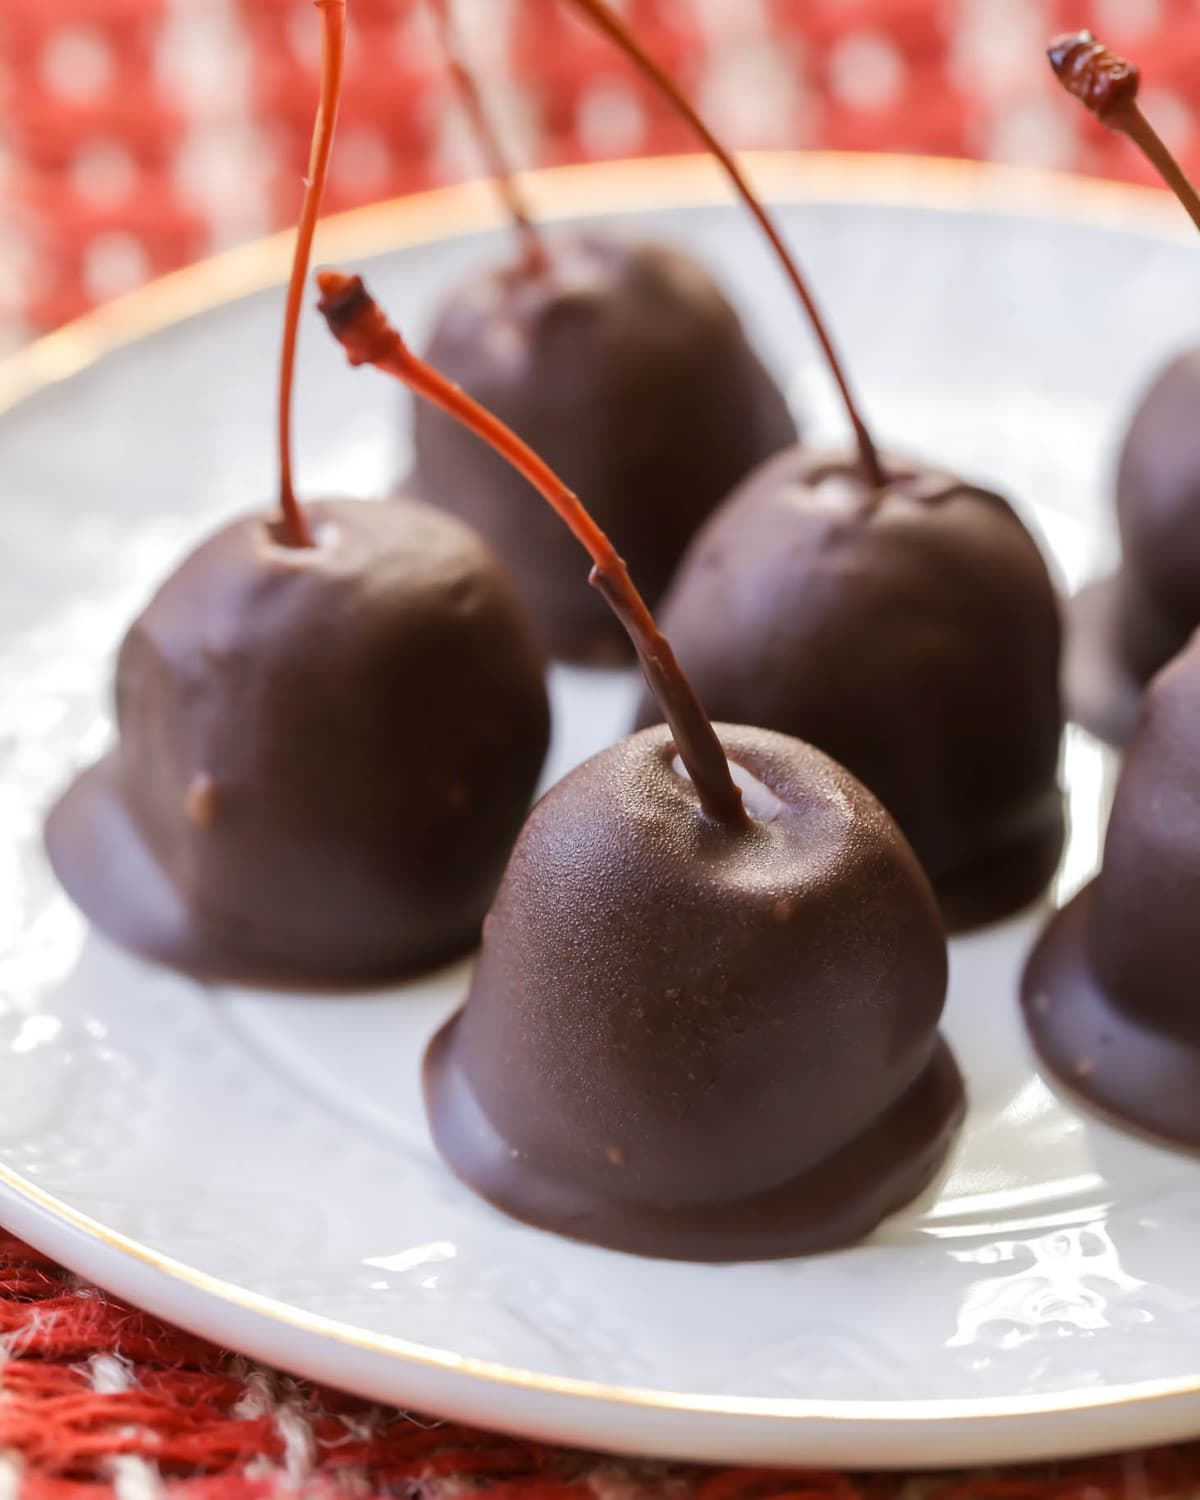 Homemade Chocolate Covered Cherries